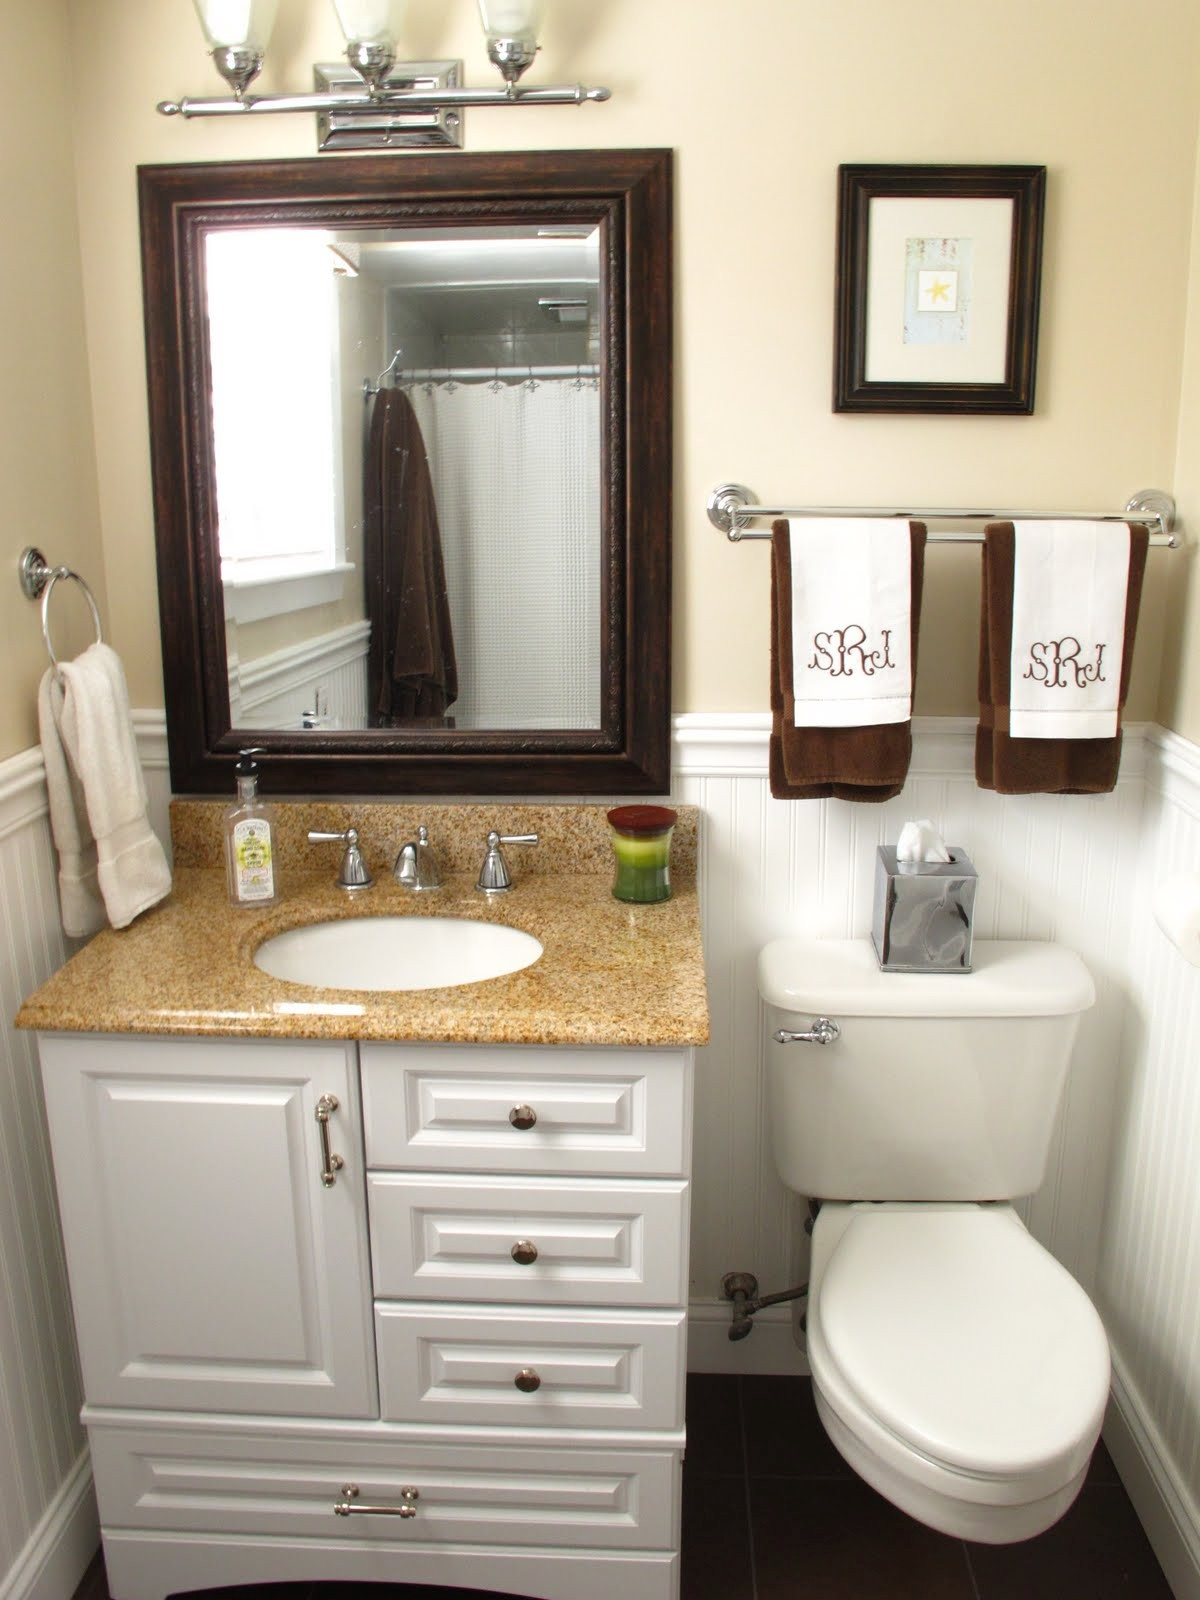 Bathroom Cabinets Home Depot Stylish Bathroom Simple Home Depot Bathroom Sinks and Vanities Home Photograph